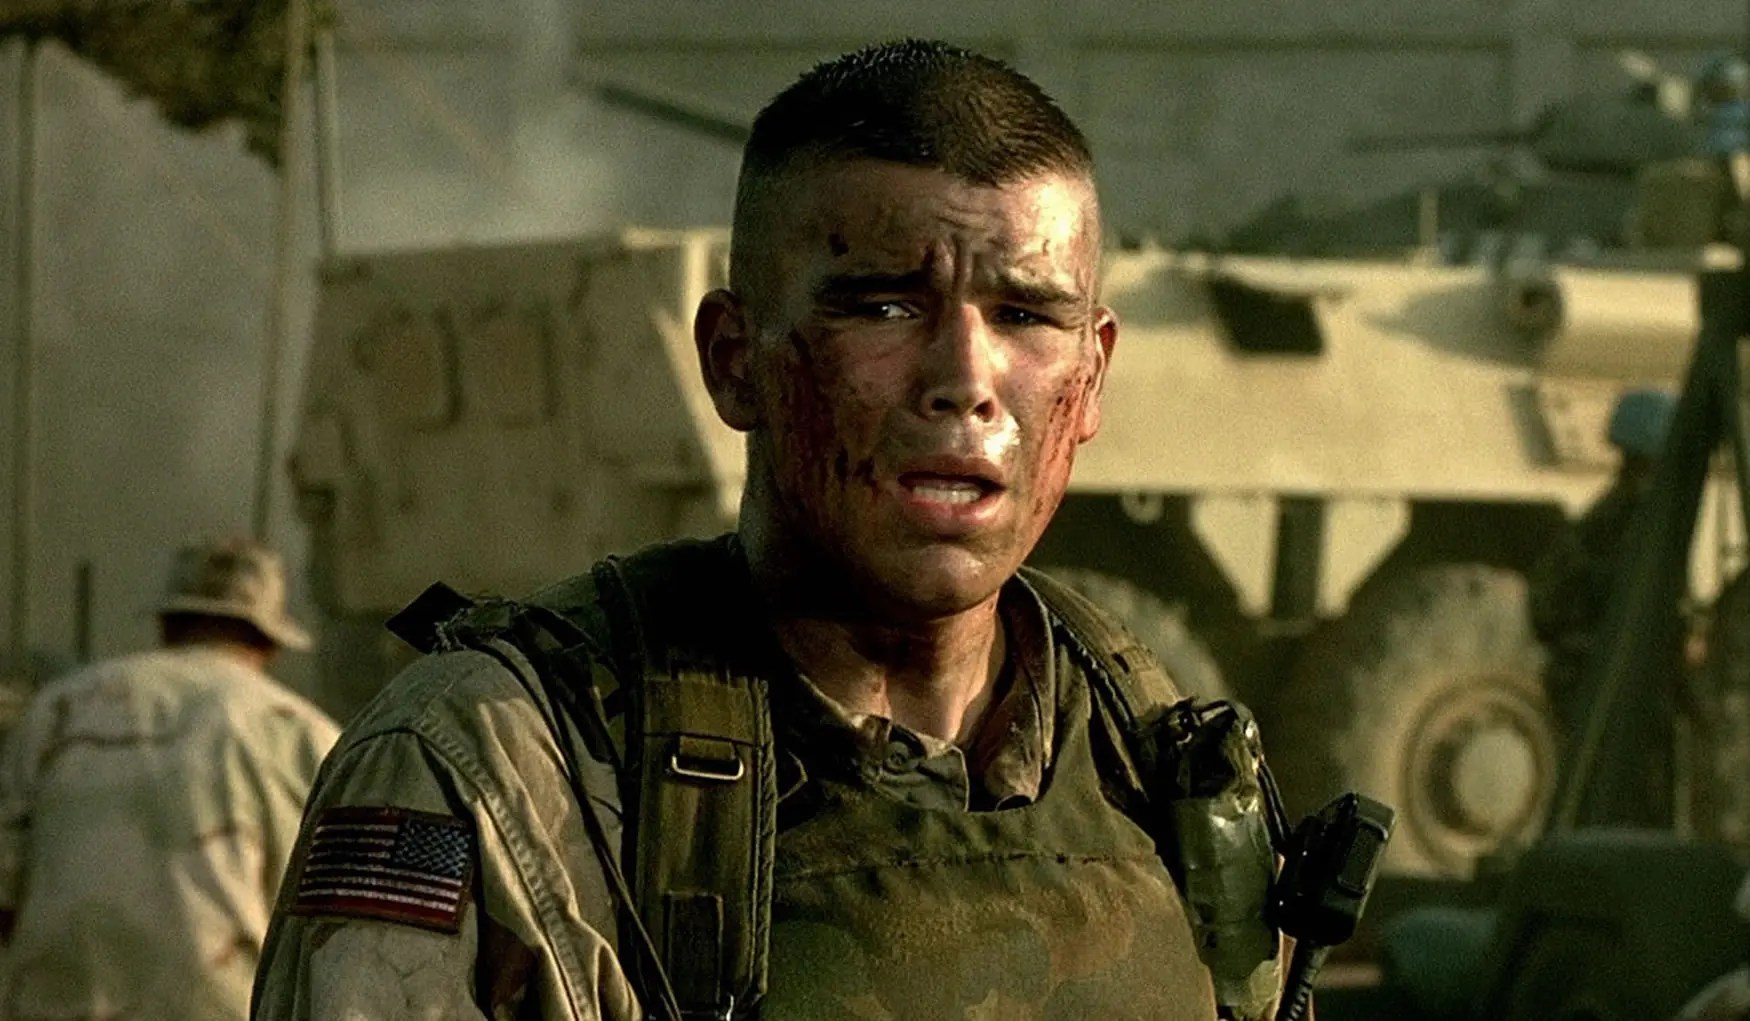 Timeless Military Haircuts That Suit Every Man